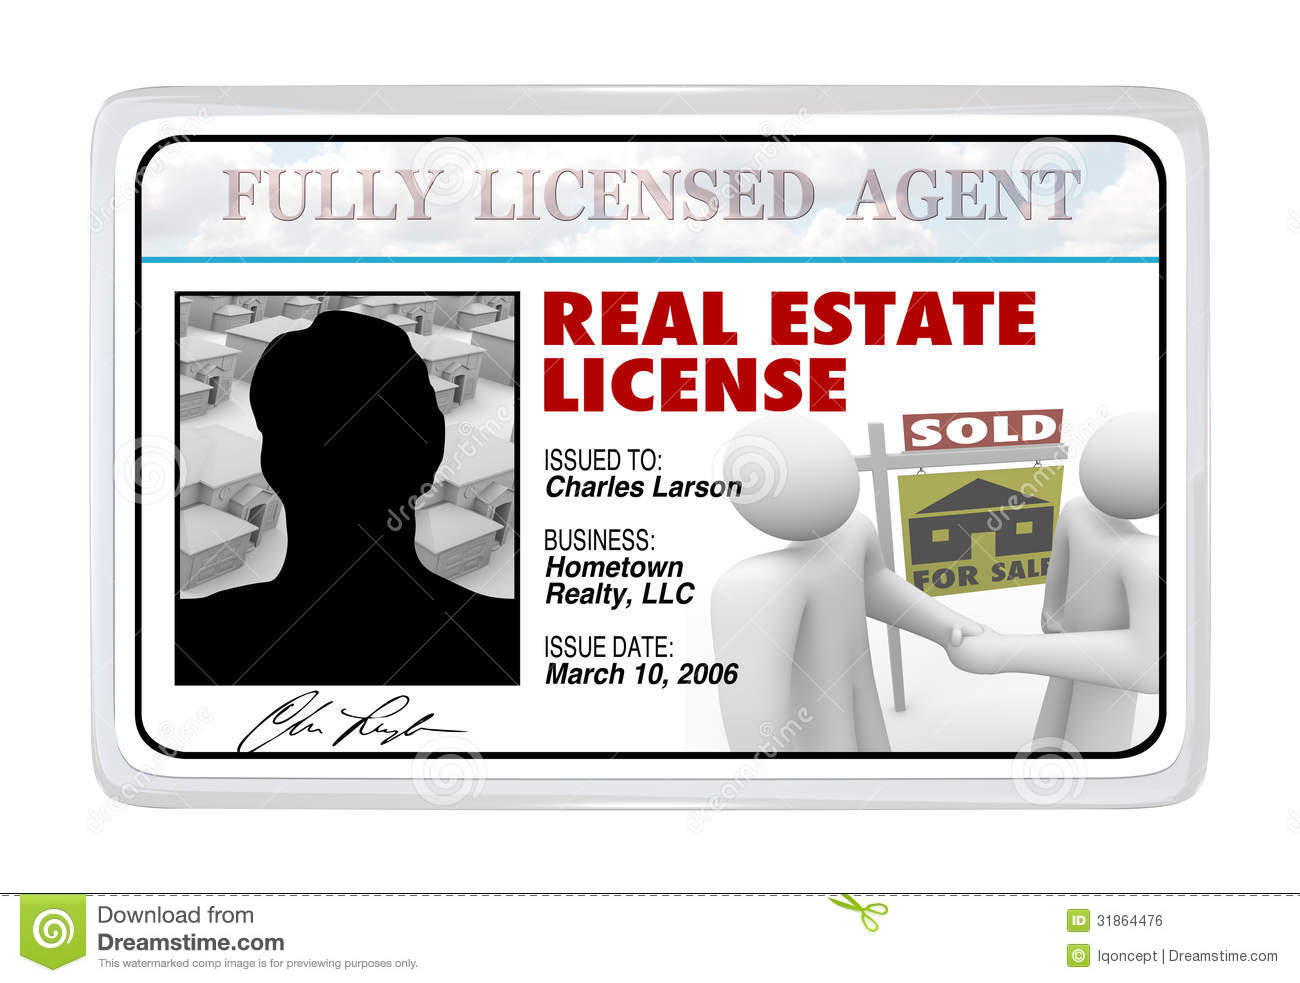 How Do I Become A Realtor Laminated Card Real Estate License For Agent